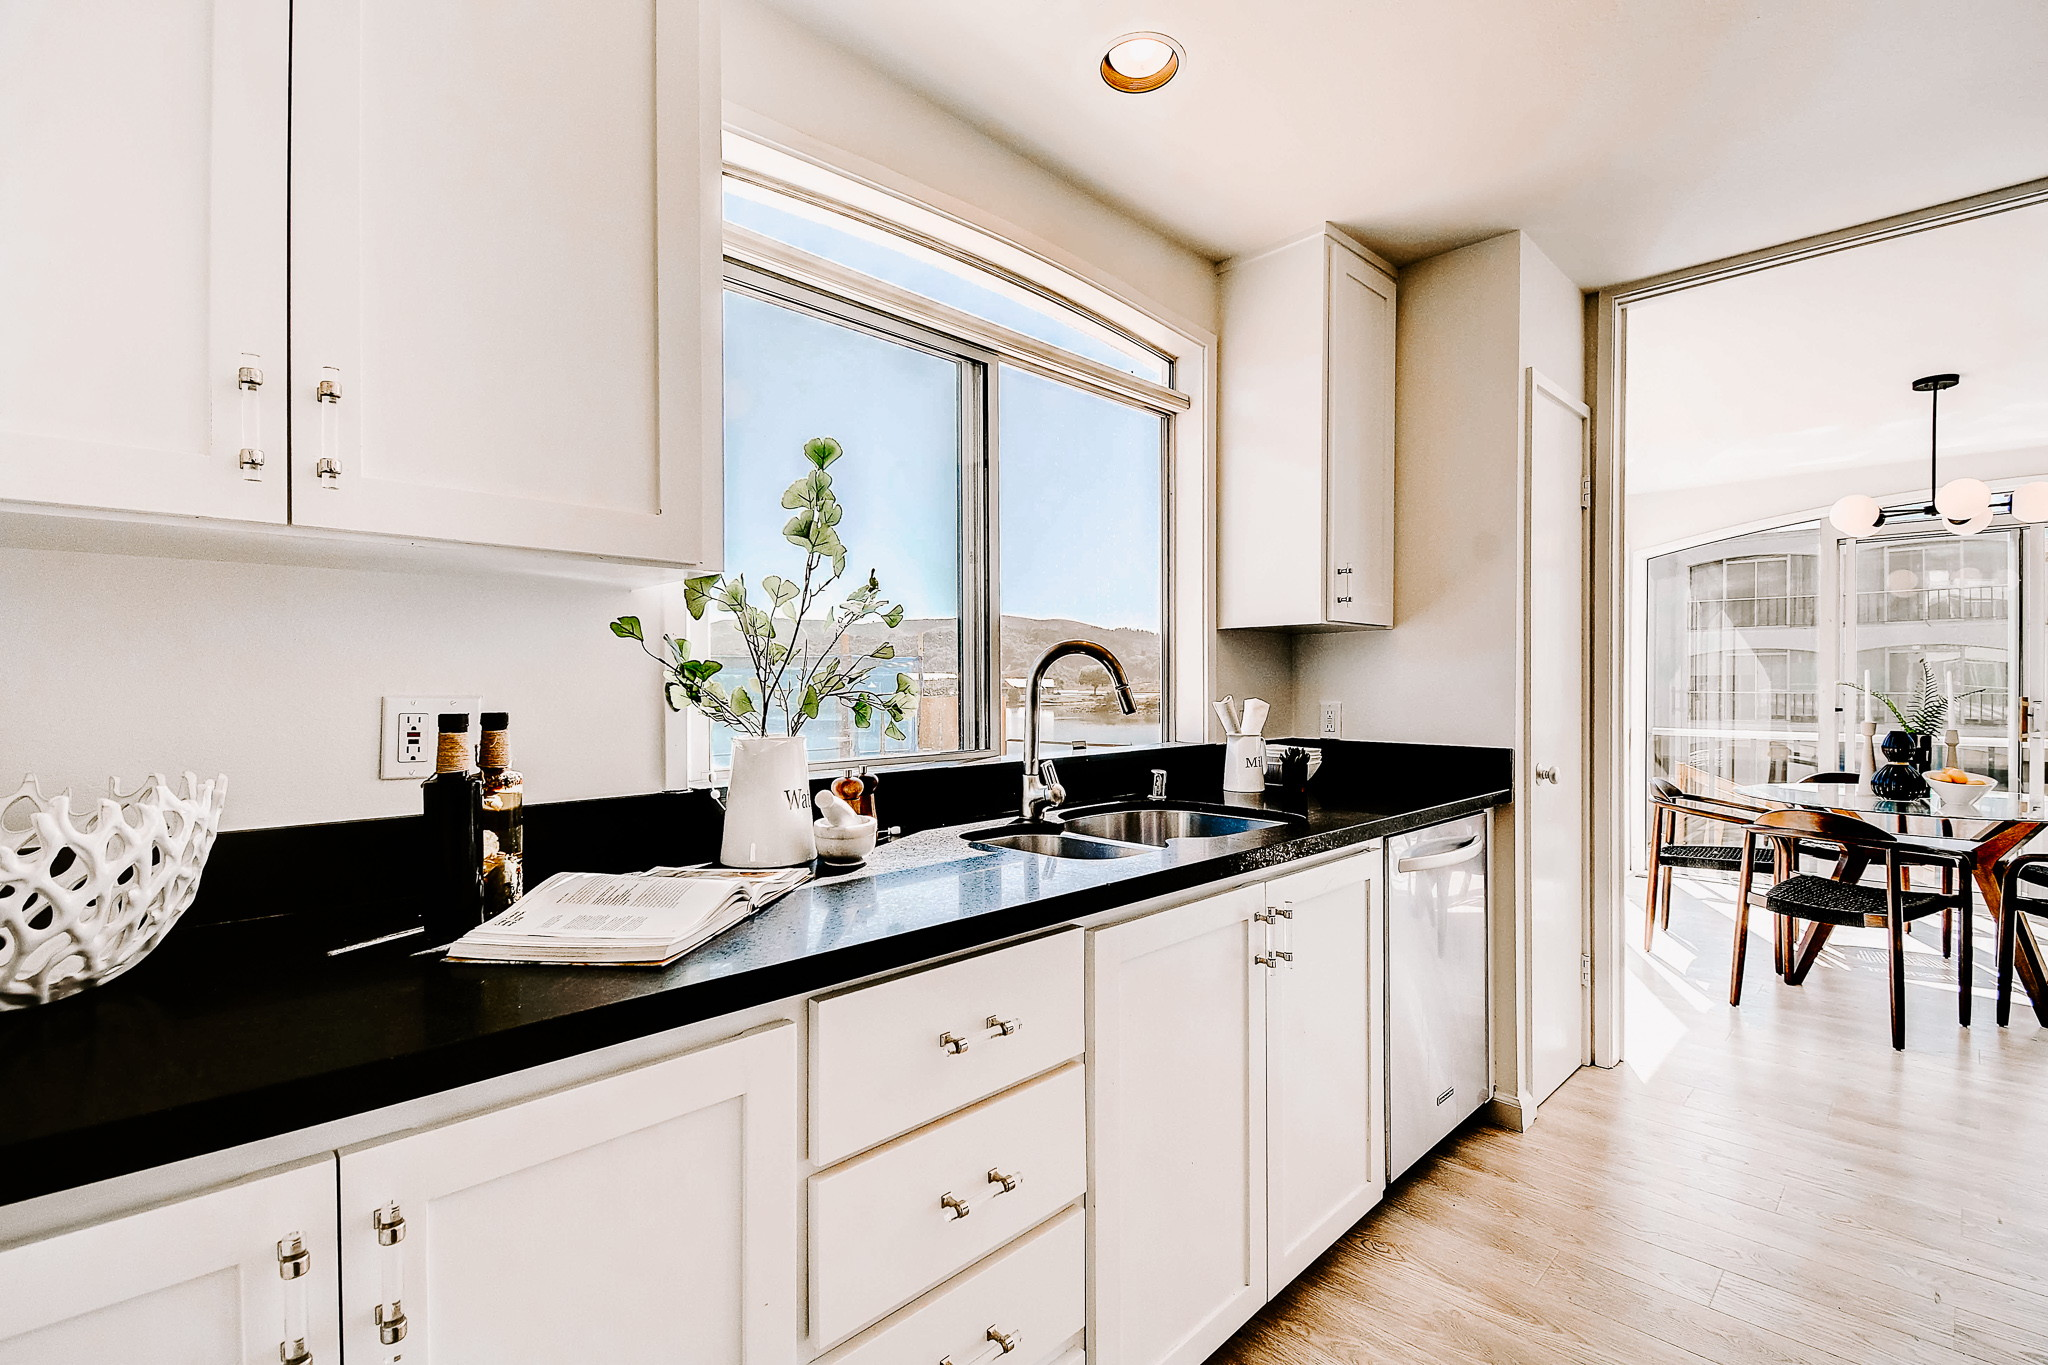 3223 Shelter Bay Avenue-5 Mill Valley Top Realtor - Allie Fornesi on Own Marin County's #1 Real Estate Team.jpg